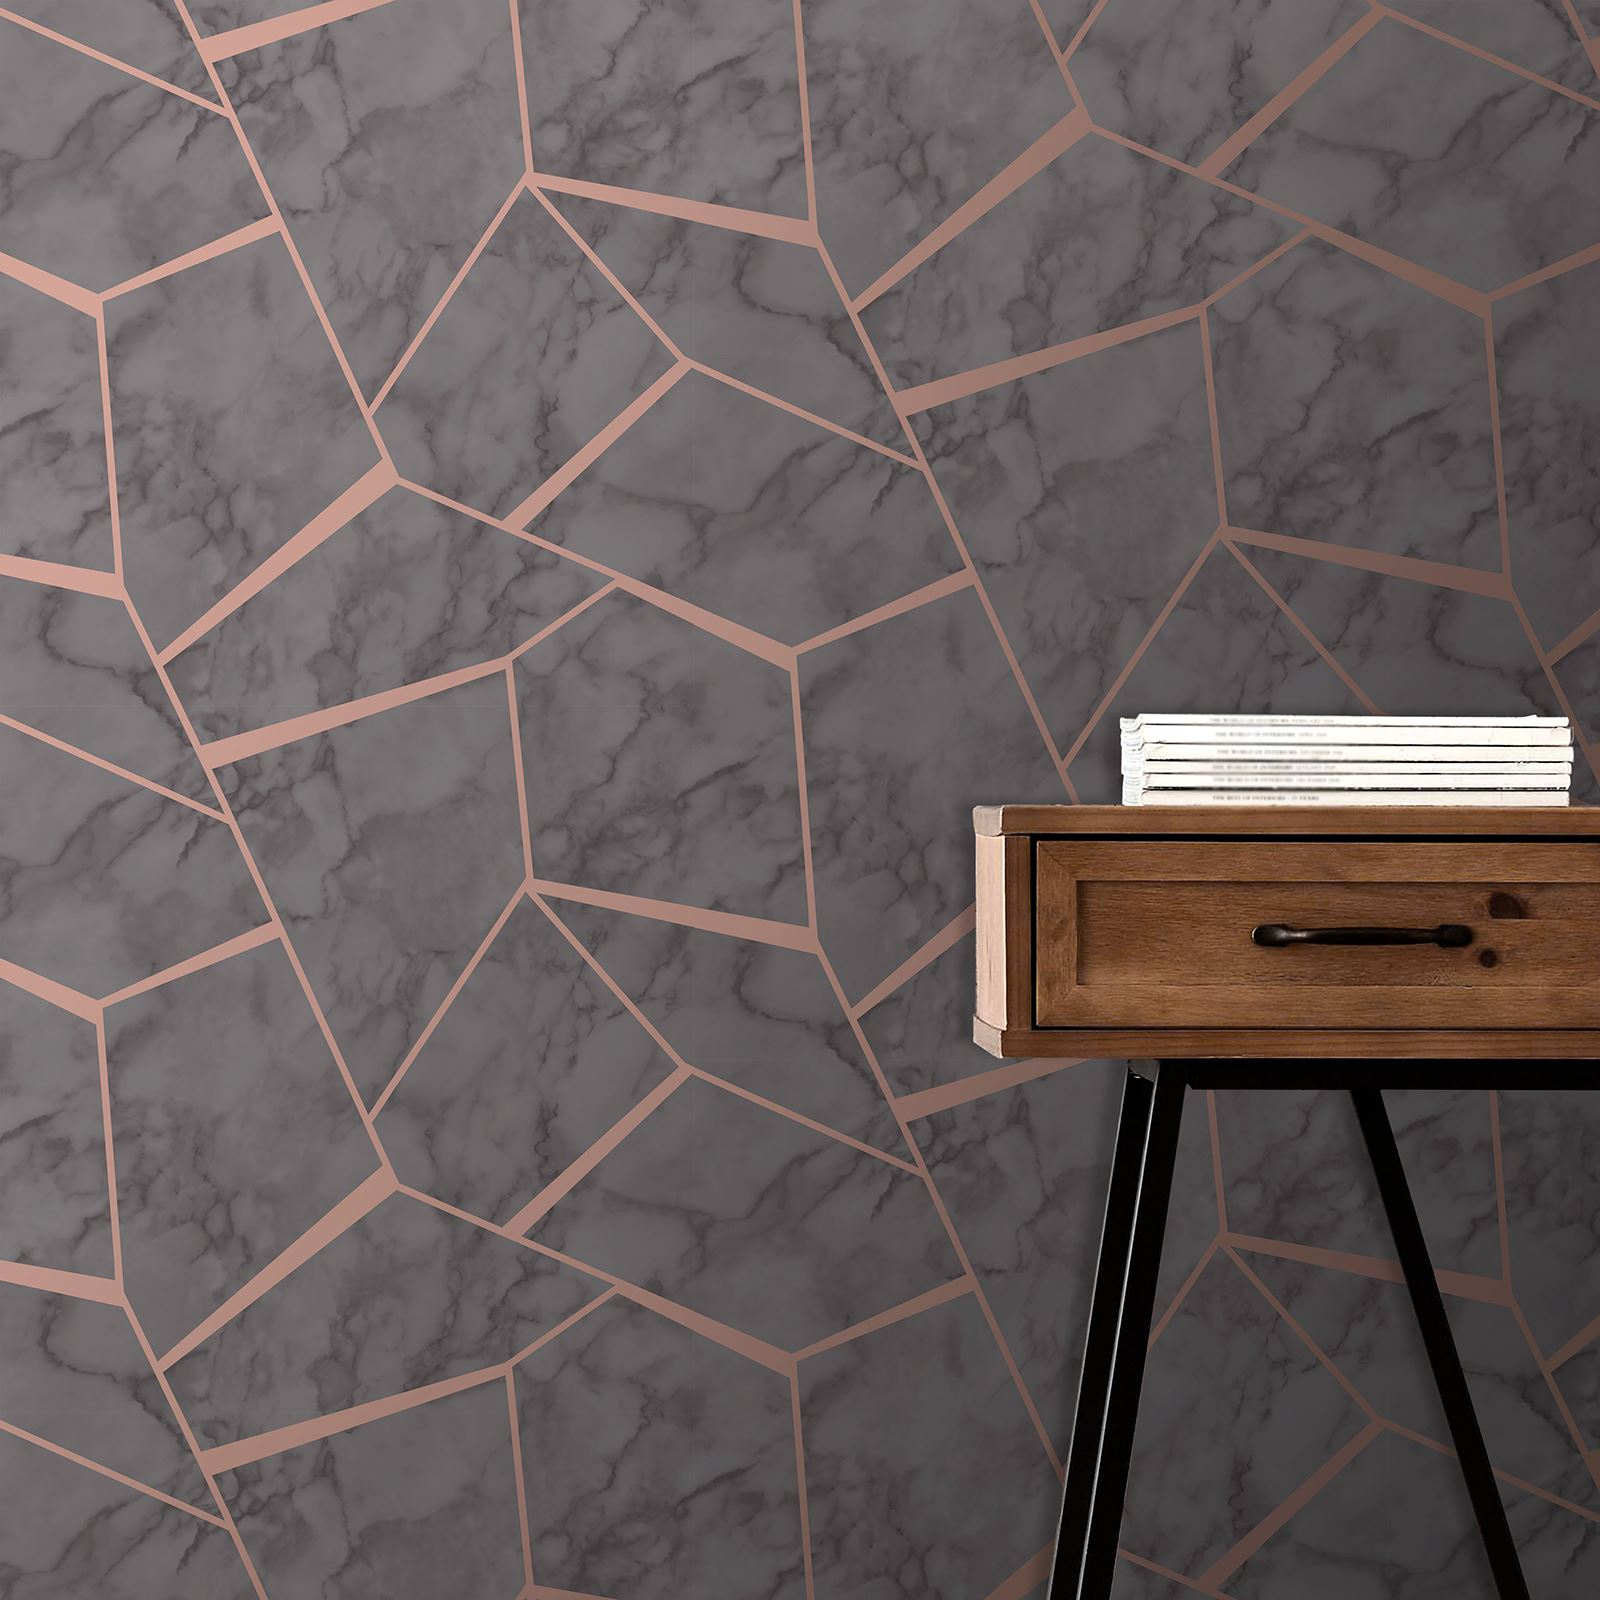 FINE-DECOR-METALLIC-GEOMETRIC-PLAIN-MARBLE-WALLPAPER-ROSE-GOLD-COPPER-SILVER thumbnail 3